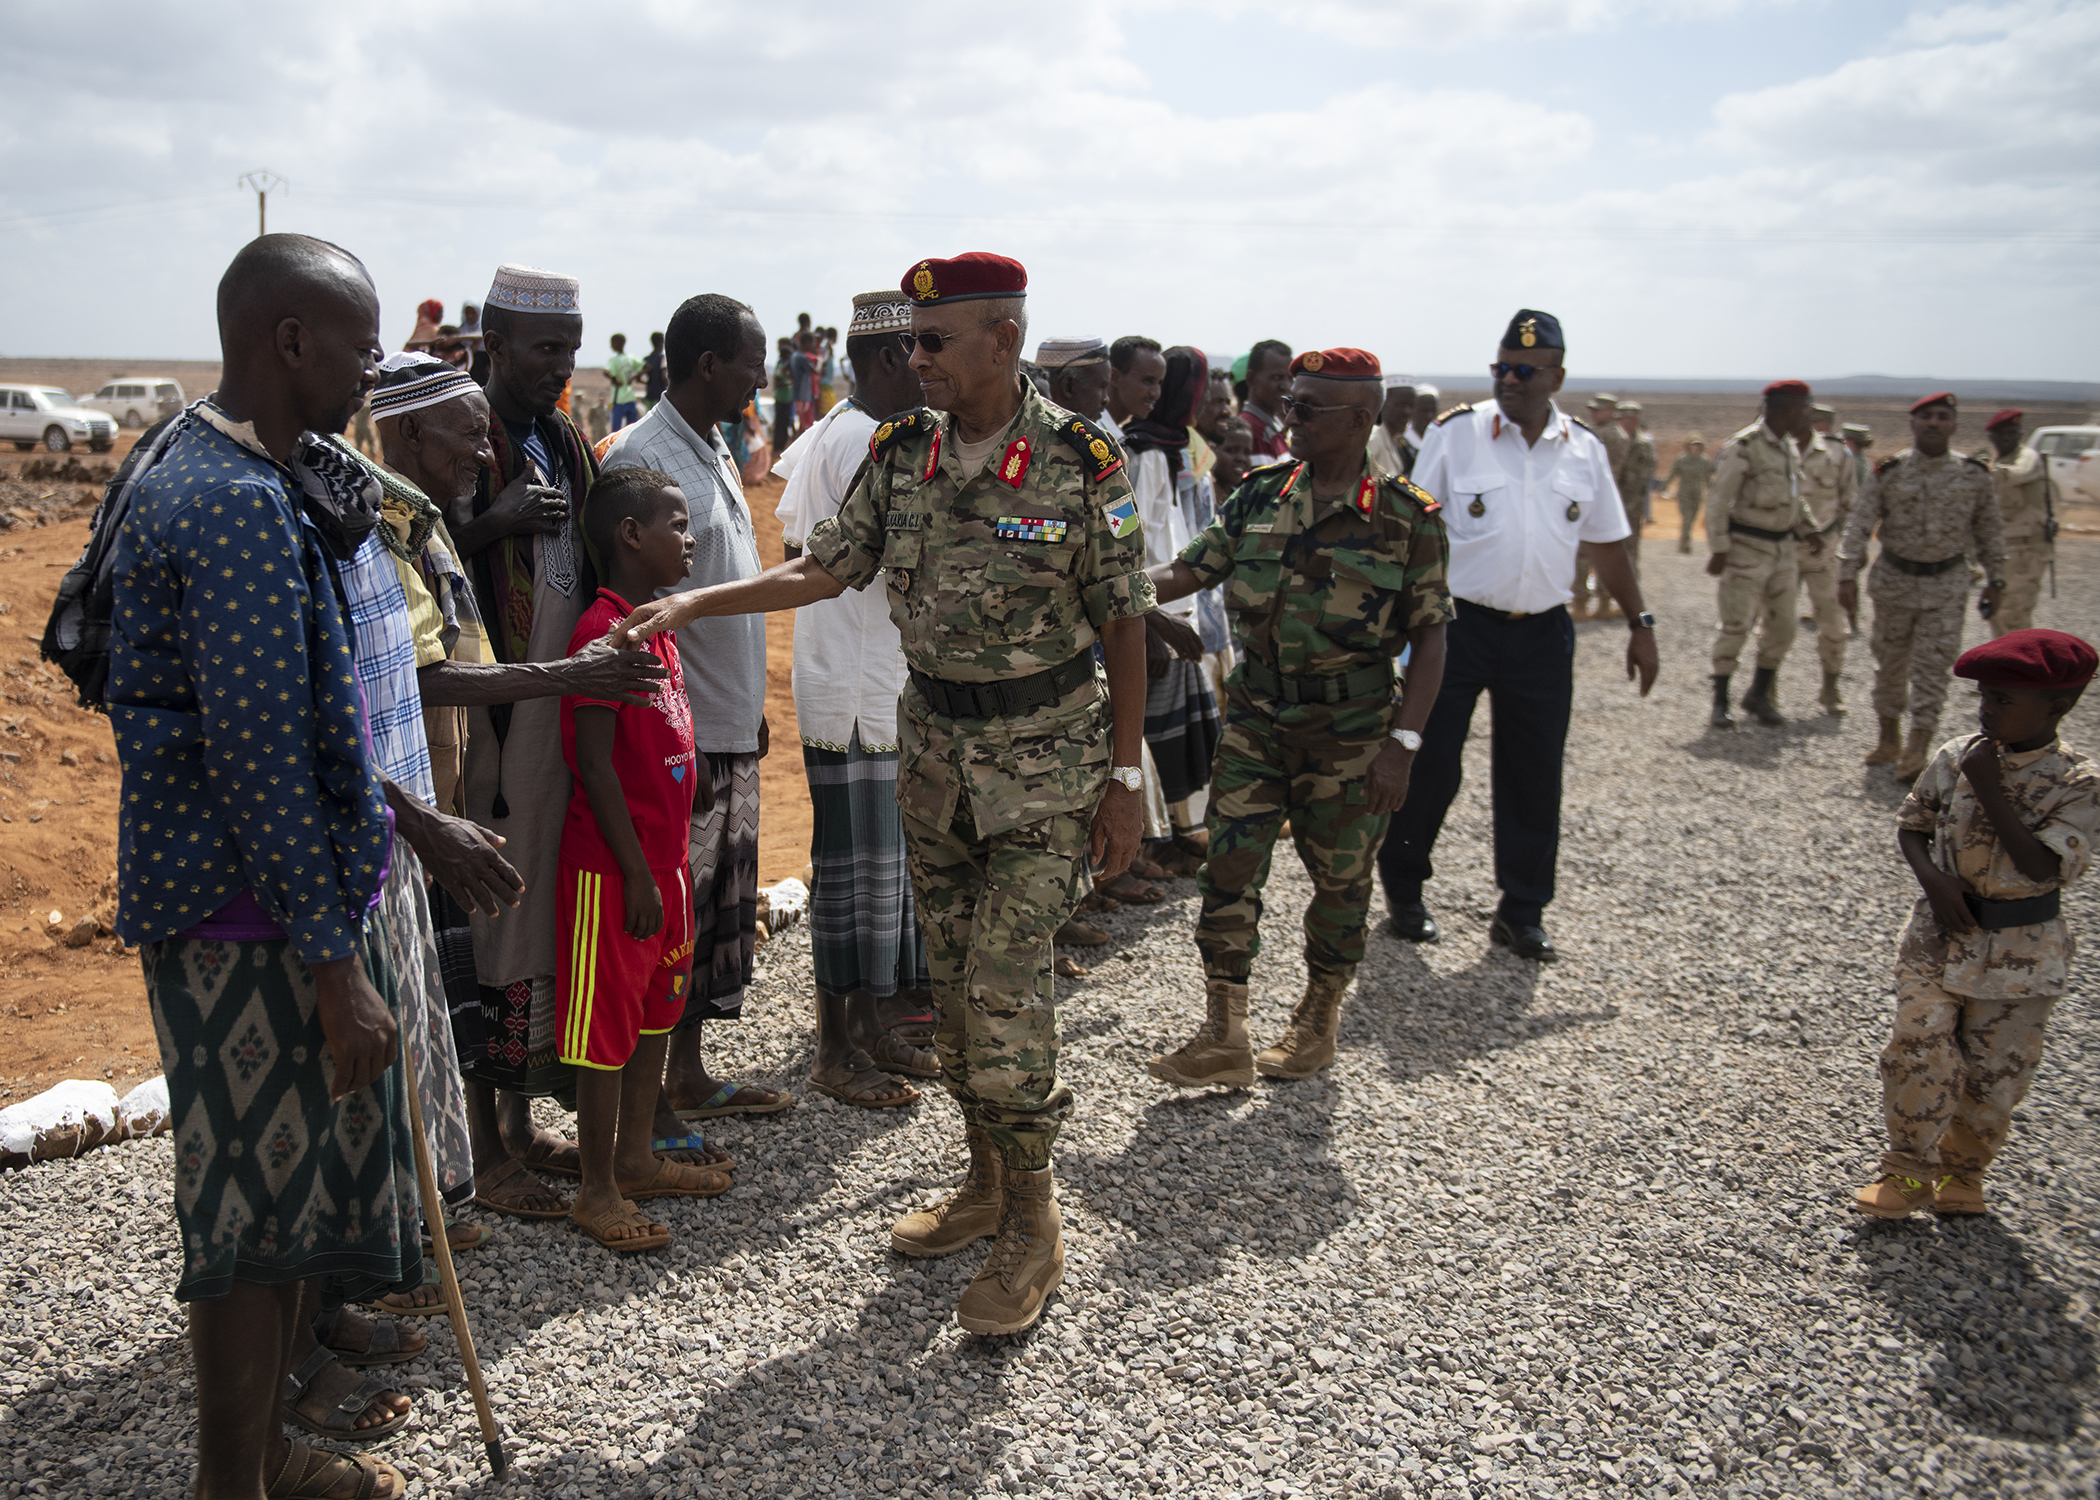 Djiboutian citizens greet military leaders during the Ali Oune Medial Clinic ribbon cutting ceremony in Ali Oune, Djibouti, Jan. 31, 2019. The clinic, which the U.S. Navy Seabees from Naval Mobile Construction Battalion 1, Combined Joint Task Force - Horn of Africa, have been working to complete for five months, is intended to enhance the Ministry of Health for Djibouti's ability to provide basic medical, birth and after care to the Ali Oune village and its more than 1,000 residents and rural neighbors. (U.S. Air Force photo by Tech. Sgt. Shawn Nickel)